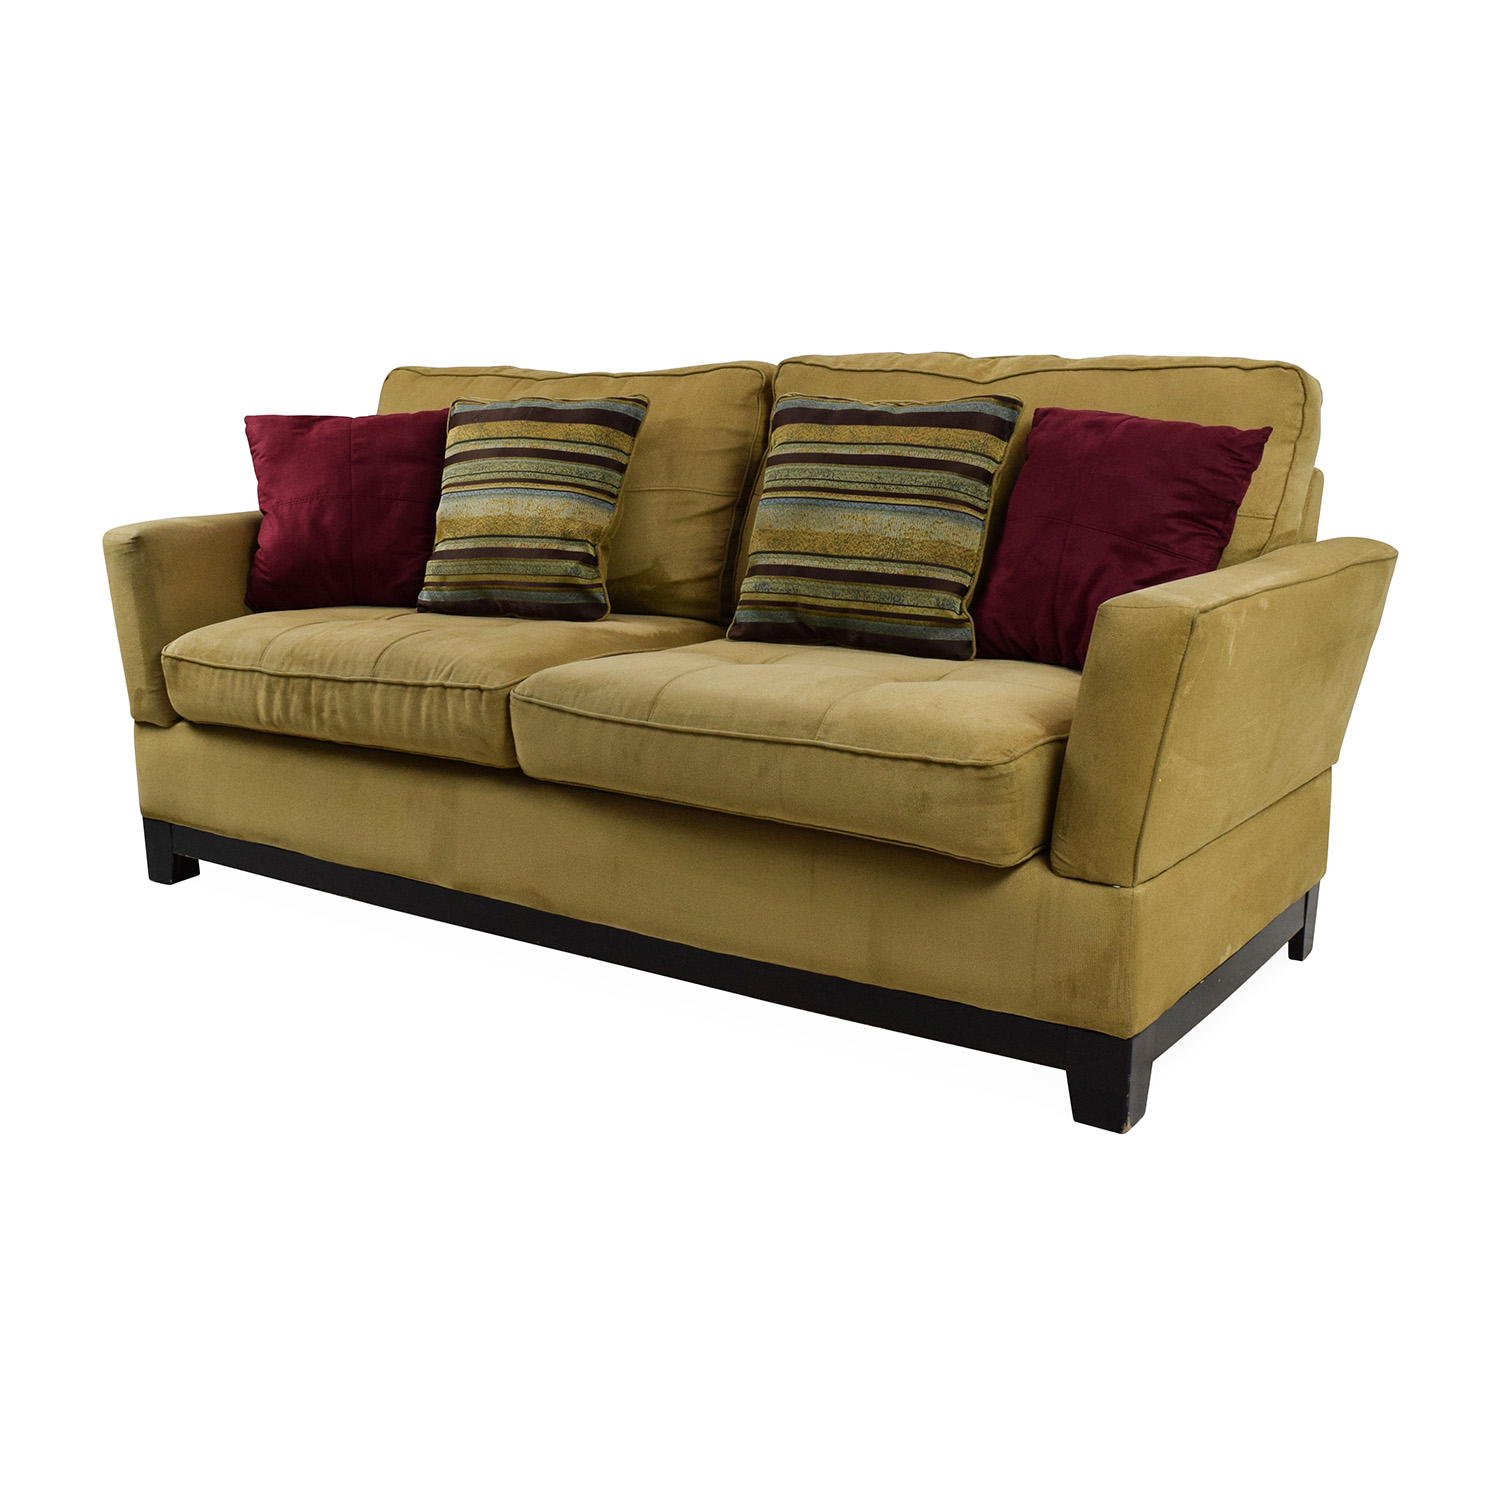 Sofas On 78 Convertibles Convertibles Sofa Sofas Sofas Comfortable Sofa Sofas Thesofa Office